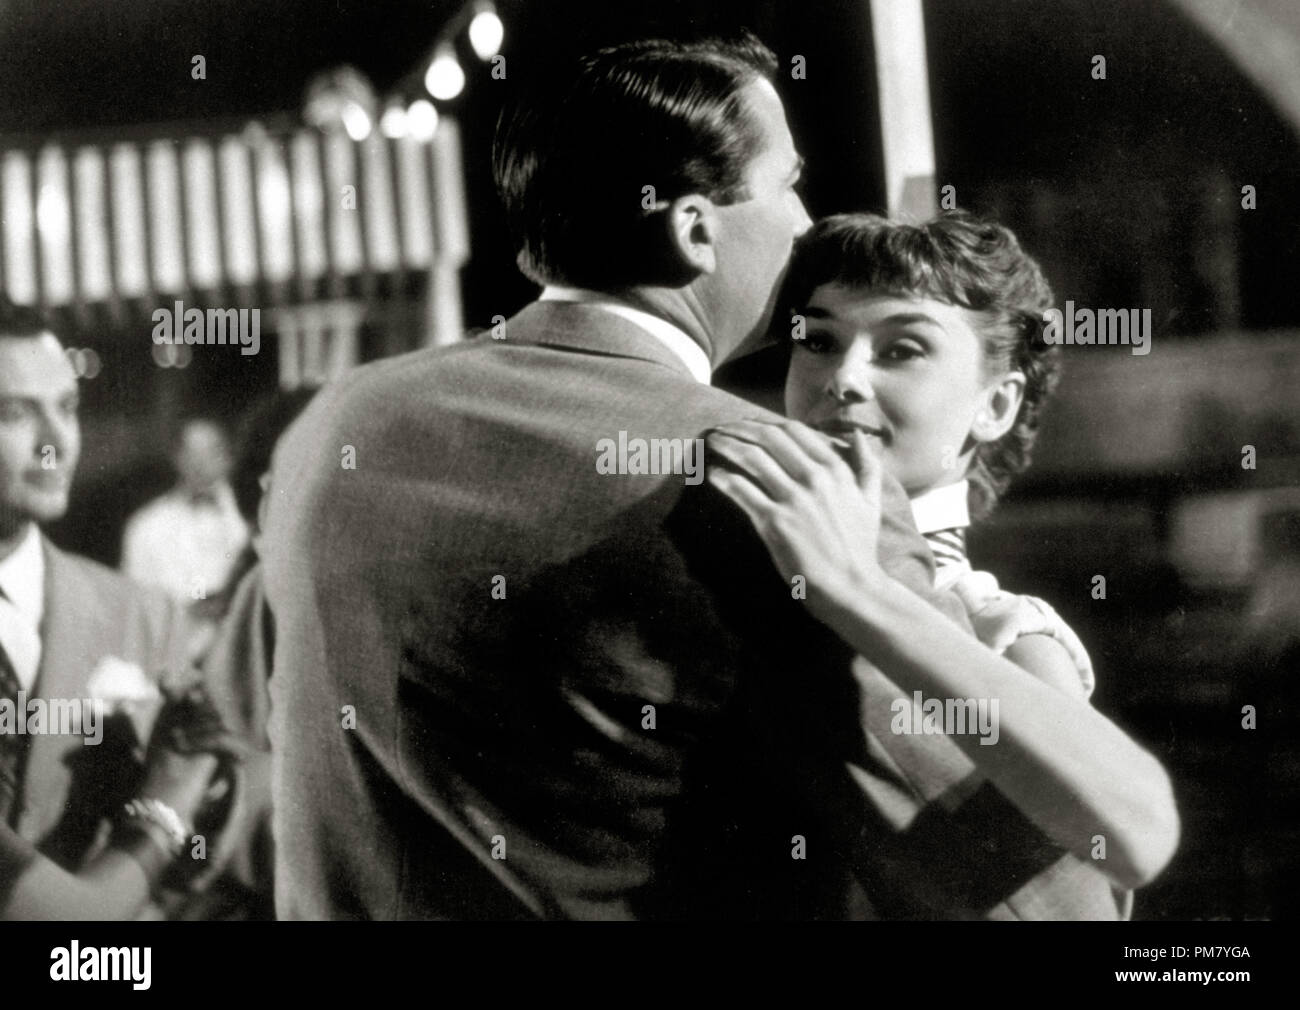 (Archival Classic Cinema - Audrey Hepburn Retrospective) Audrey Hepburn and Gregory Peck,'Roman Holiday' 1953 Paramount File Reference # 31569_003THA - Stock Image